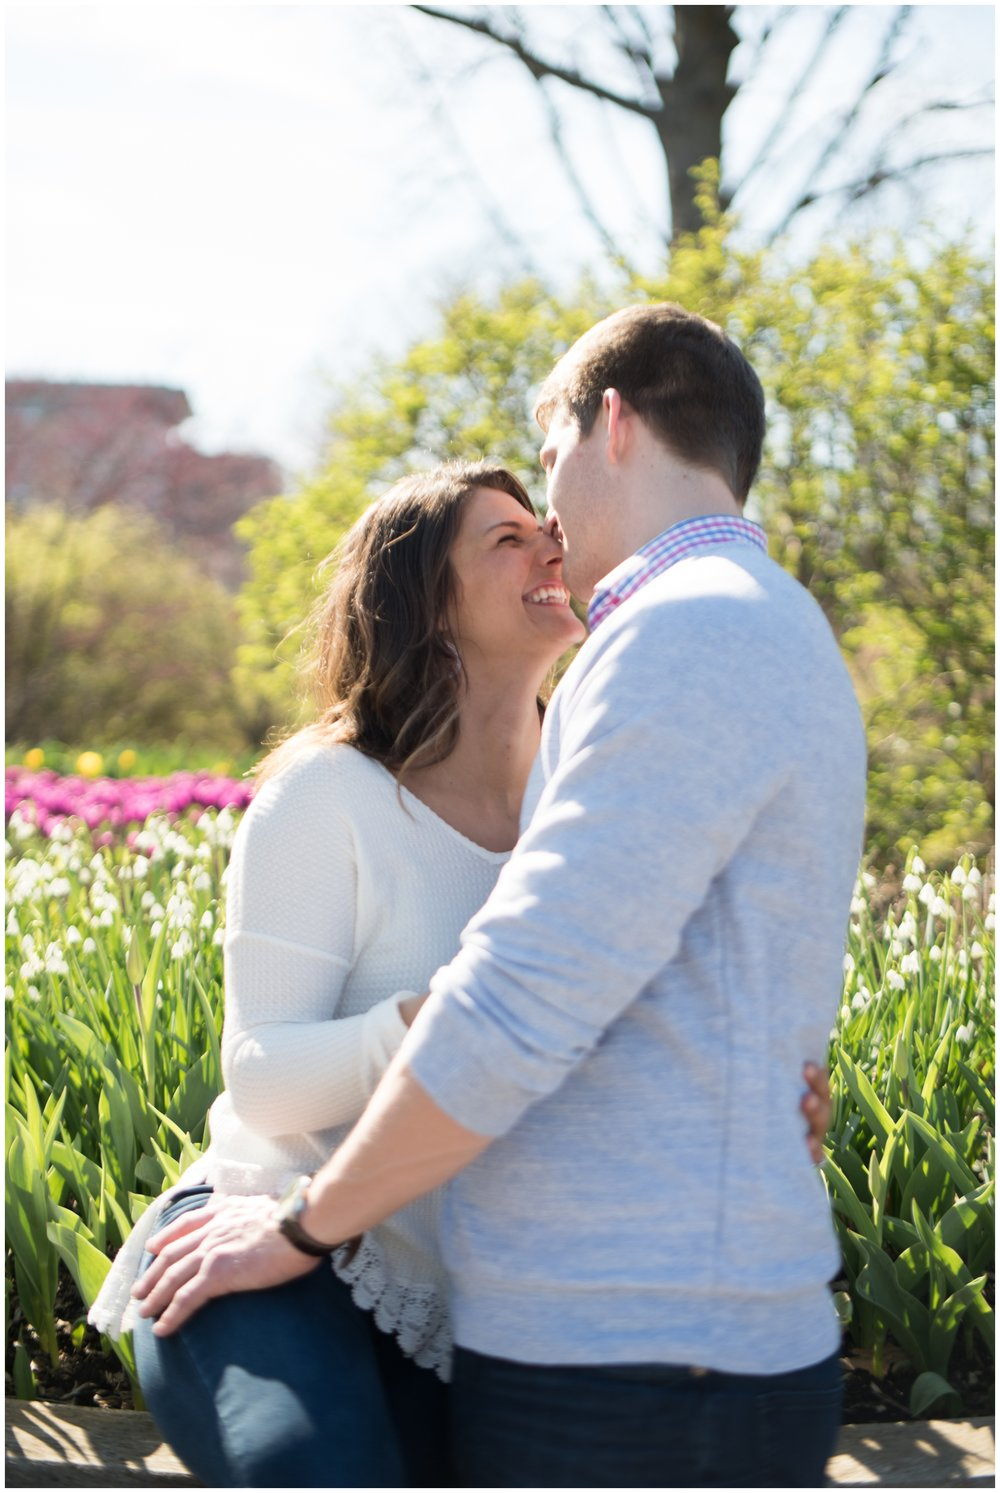 Indianapolis Engagement Session at the Indianapolis Museum of Art by Rachael Foster Photography_0018.jpg